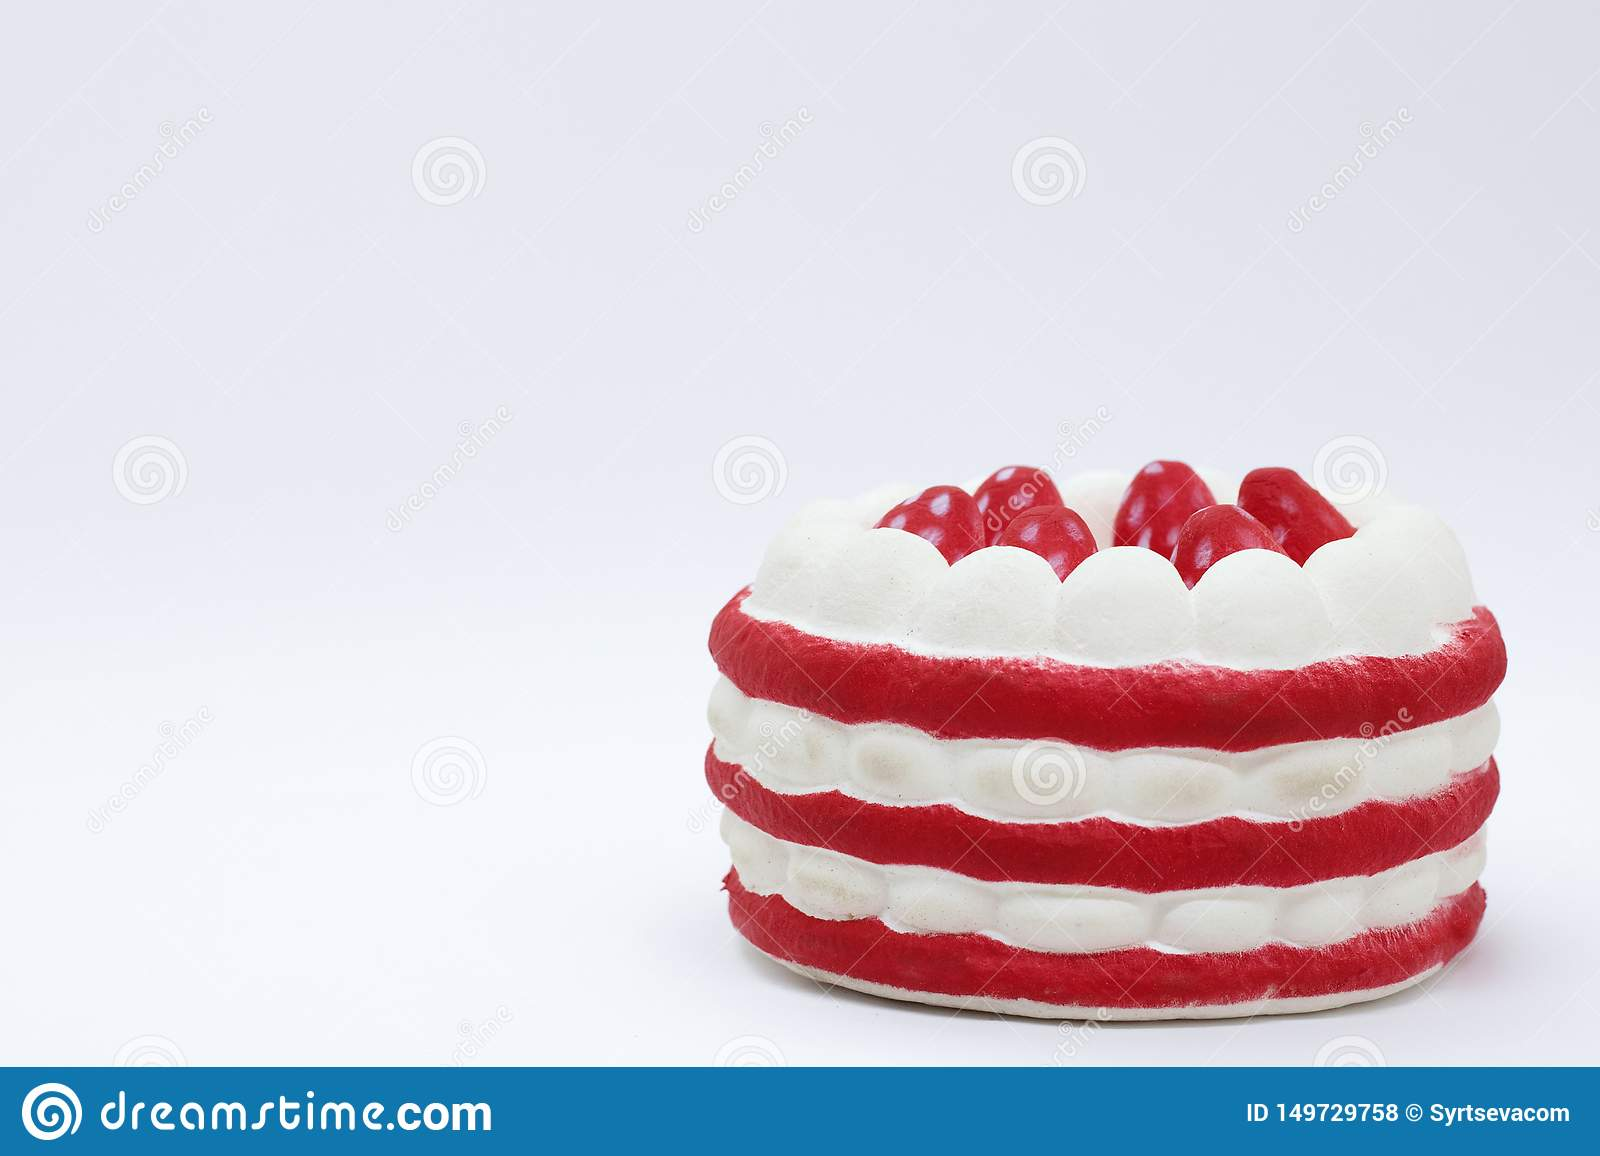 Sweet dessert, with red and white layers in the corner of the photo. place for text.